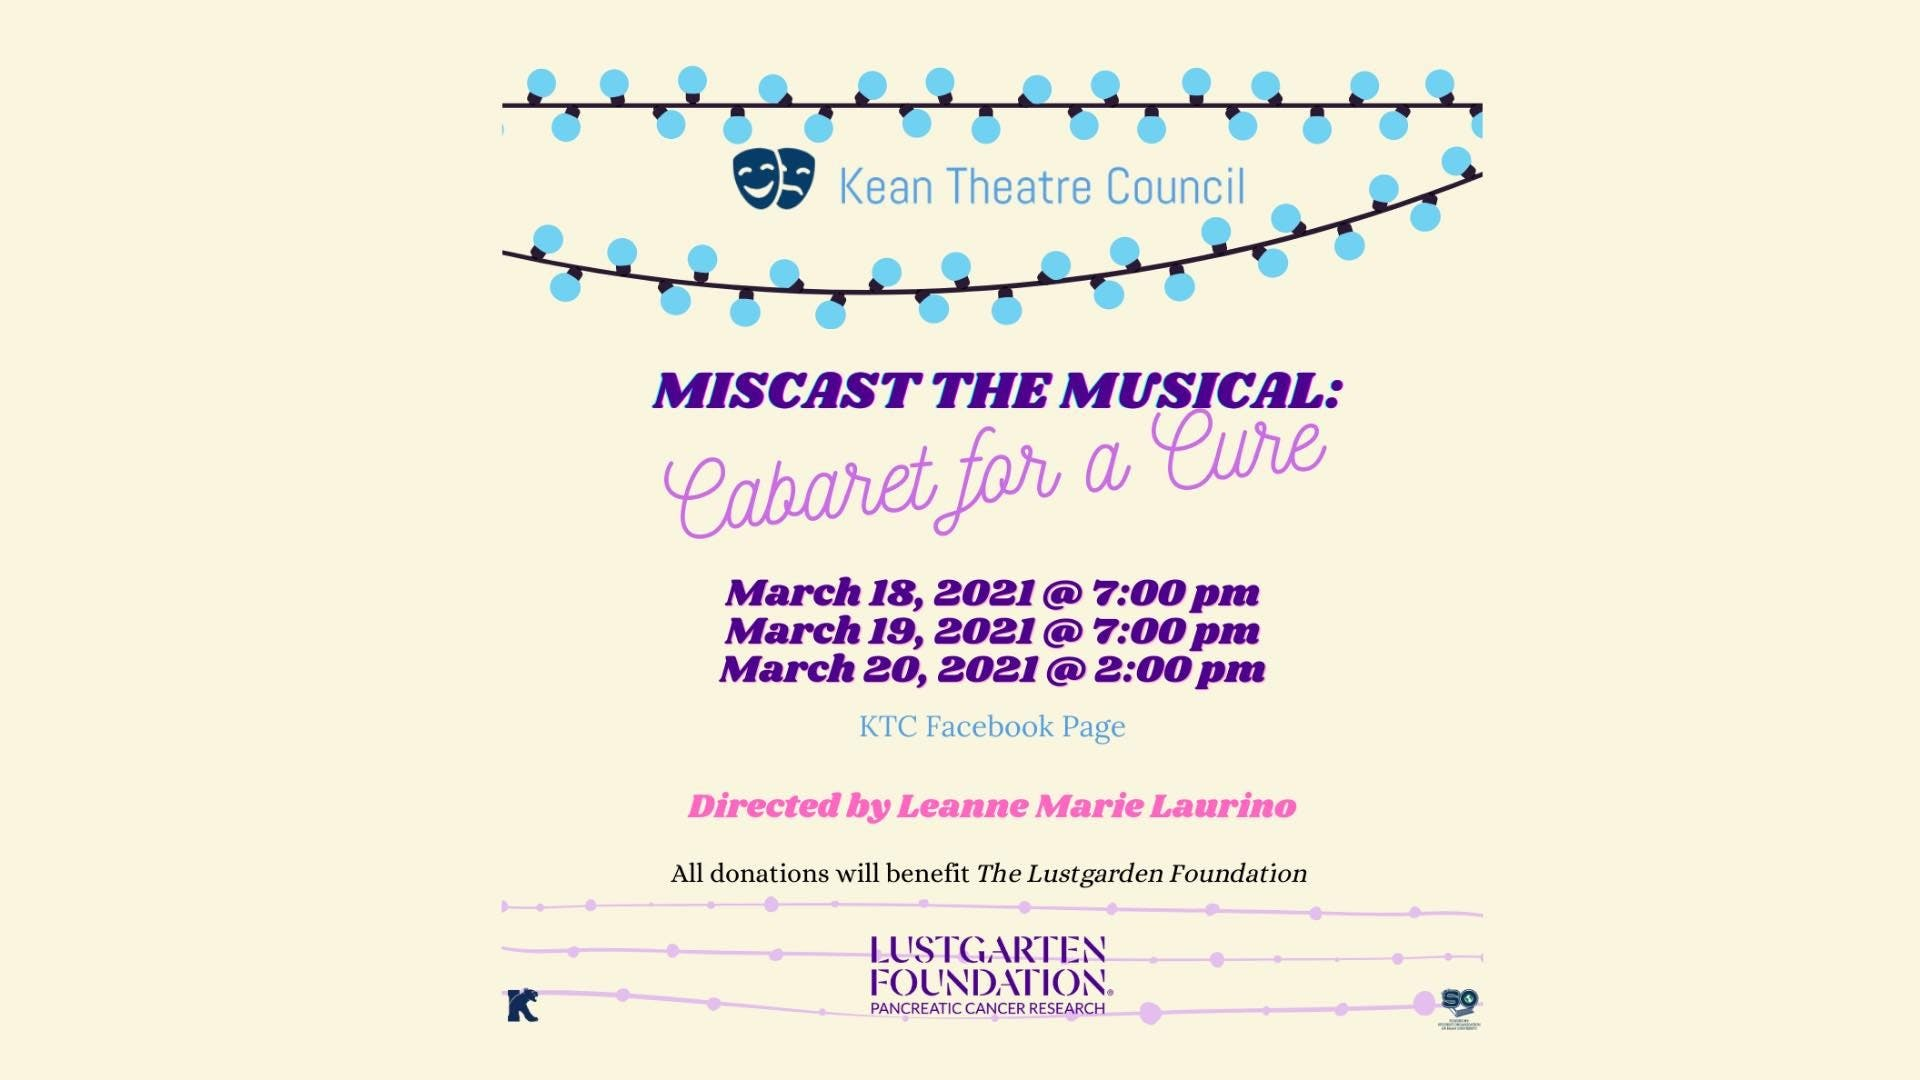 Miscast The Musical